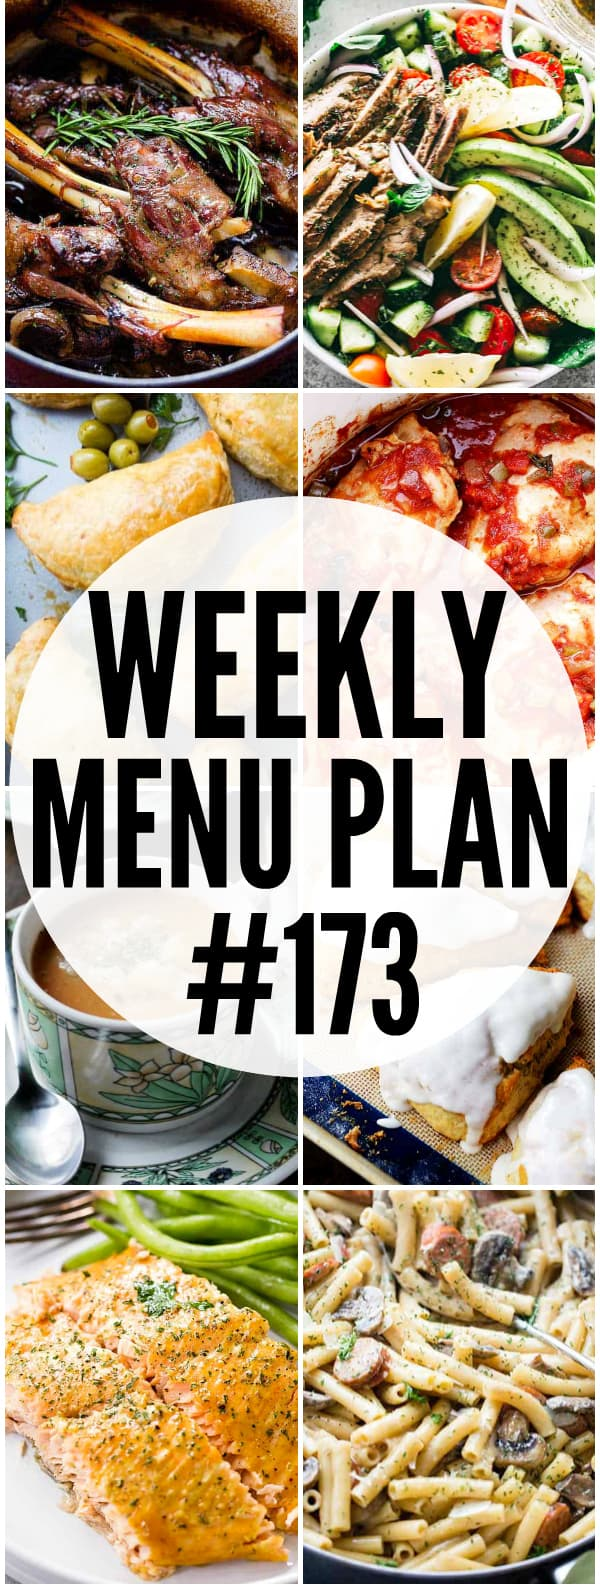 WEEKLY MENU PLAN (#173) -A delicious collection of dinner, side dish and dessert recipes to help you plan your weekly menu and make life easier for you!